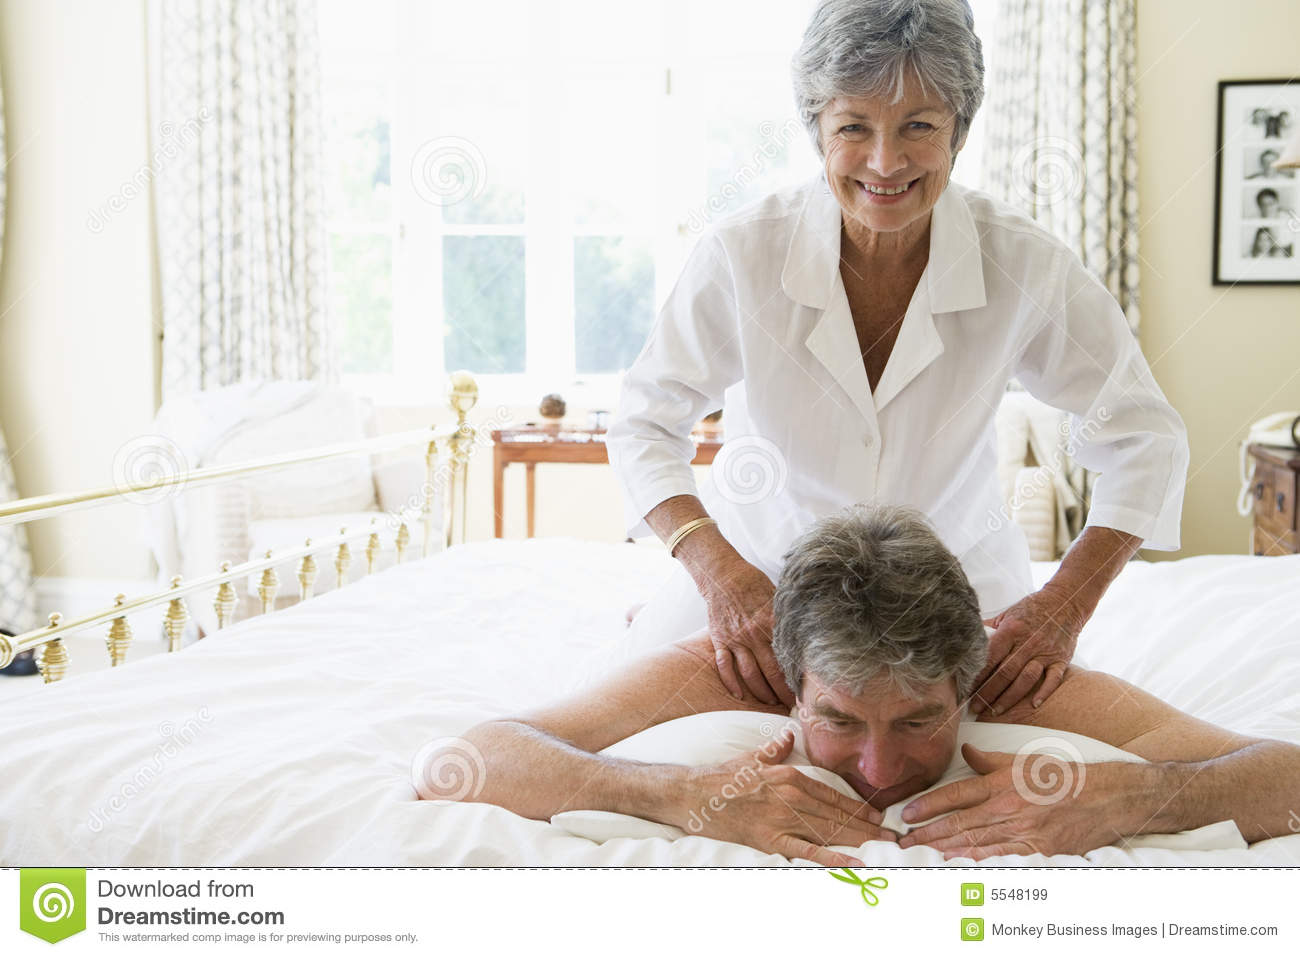 Woman Giving Man Massage In Bedroom Smiling Royalty Free ...